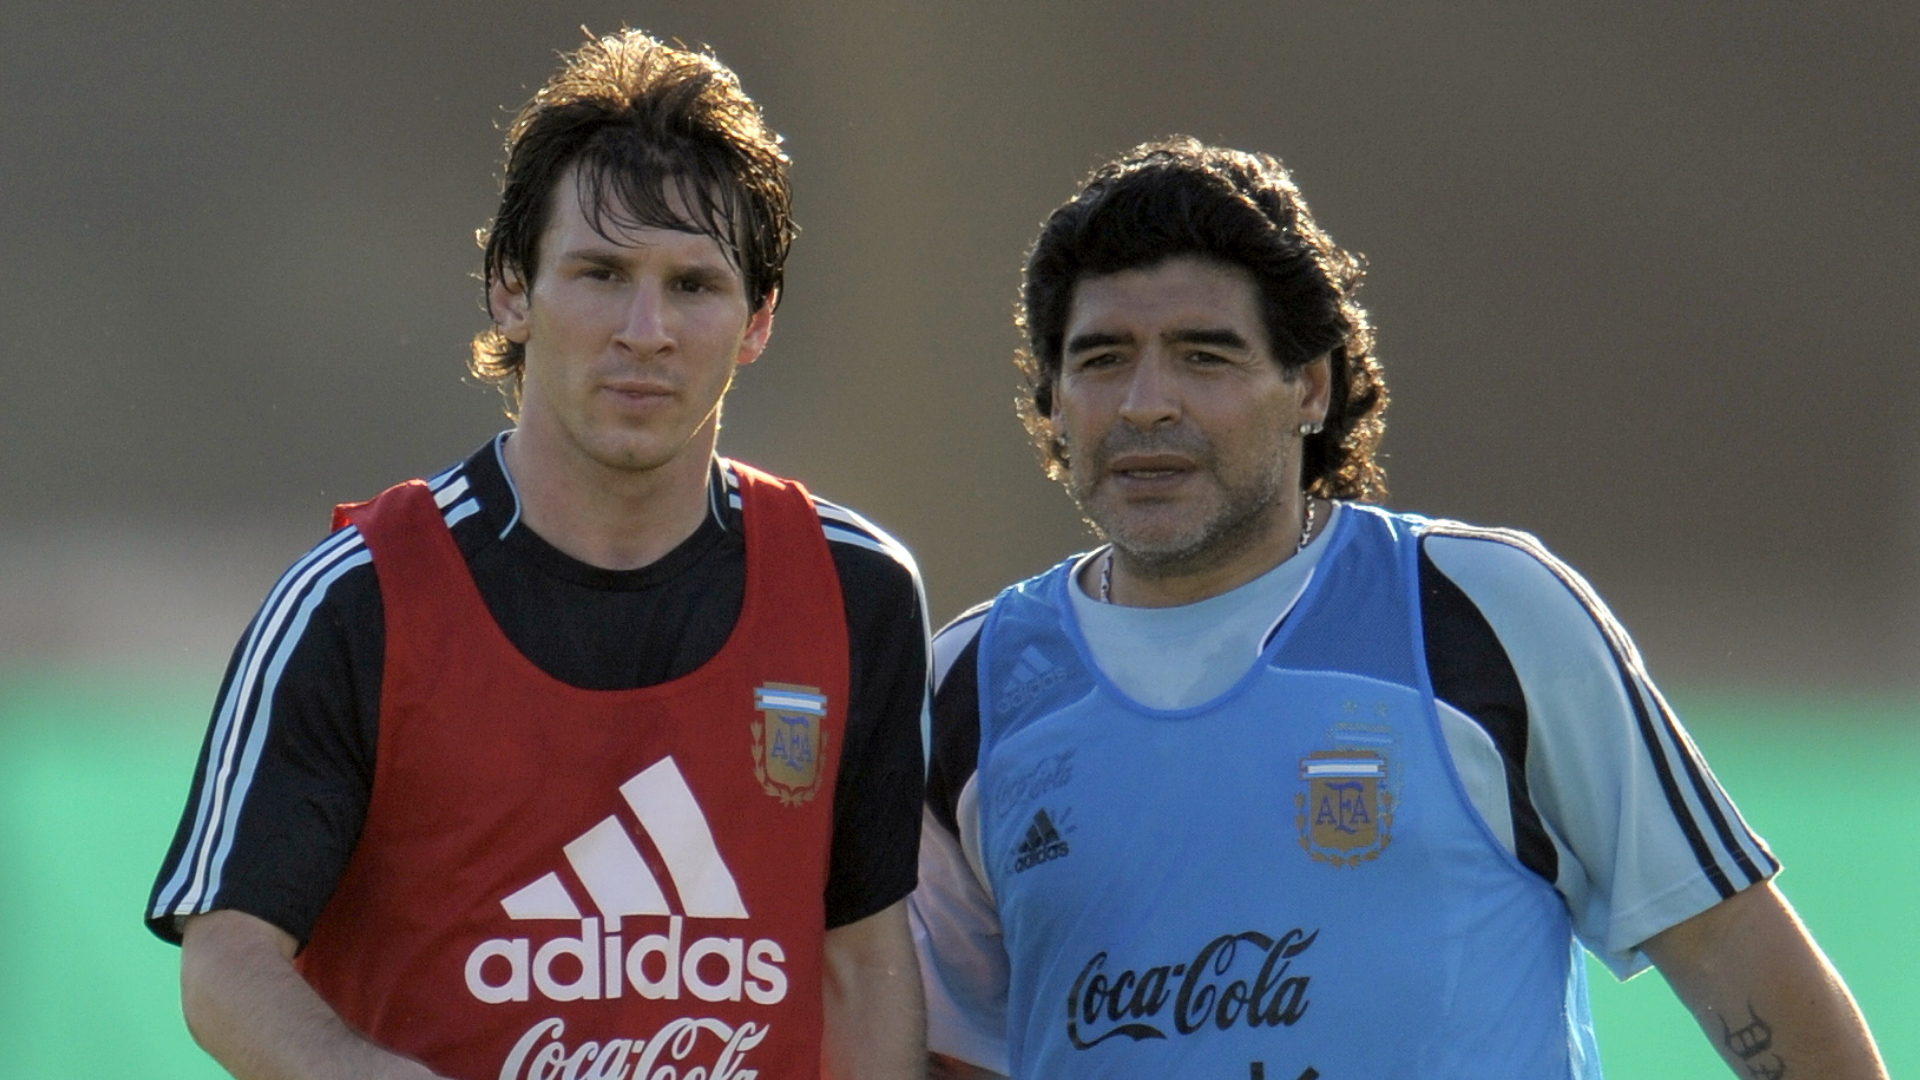 'Diego is eternal' - Messi pays tribute to Maradona after Argentine legend dies at 60